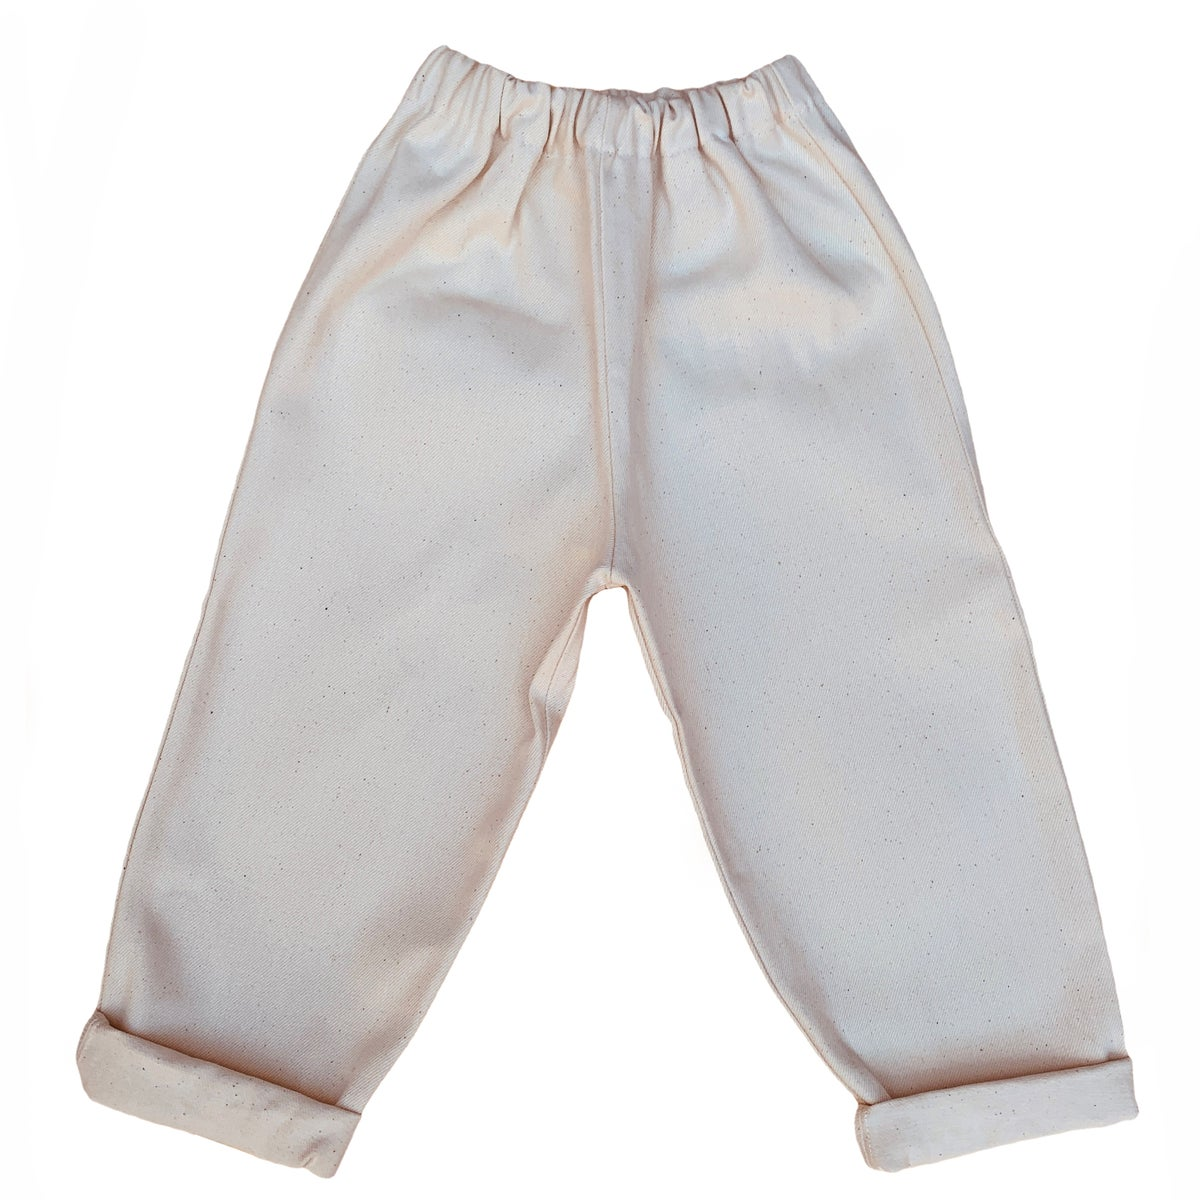 Image of Pippins - Toddler Jeans in Ecru